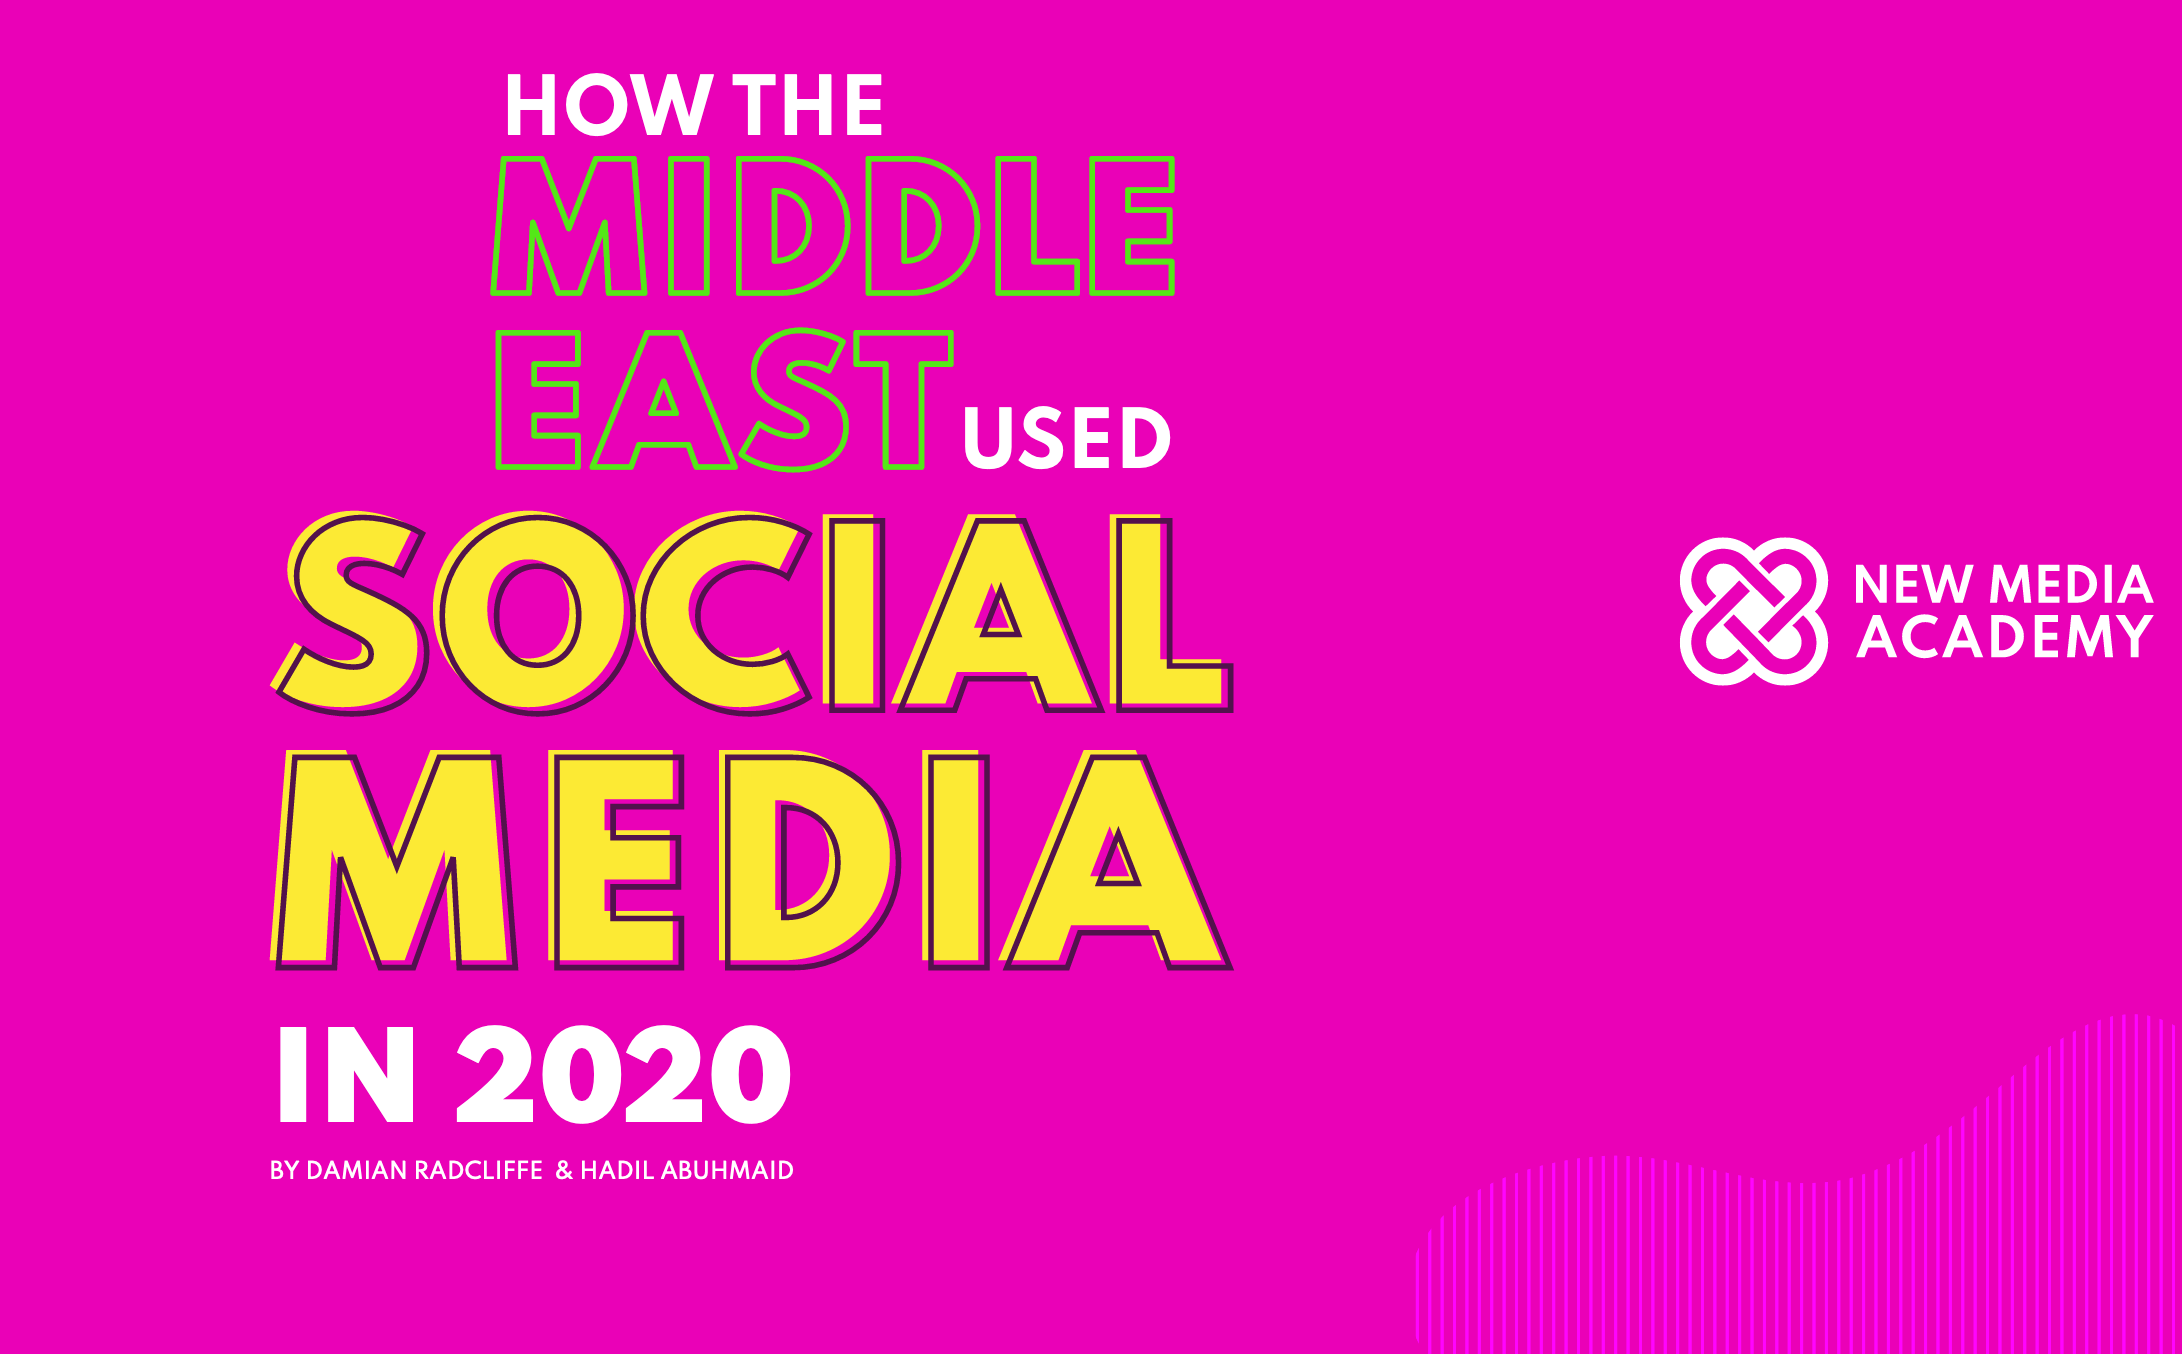 how-did-the-middle-east-use-social-media-in-2020